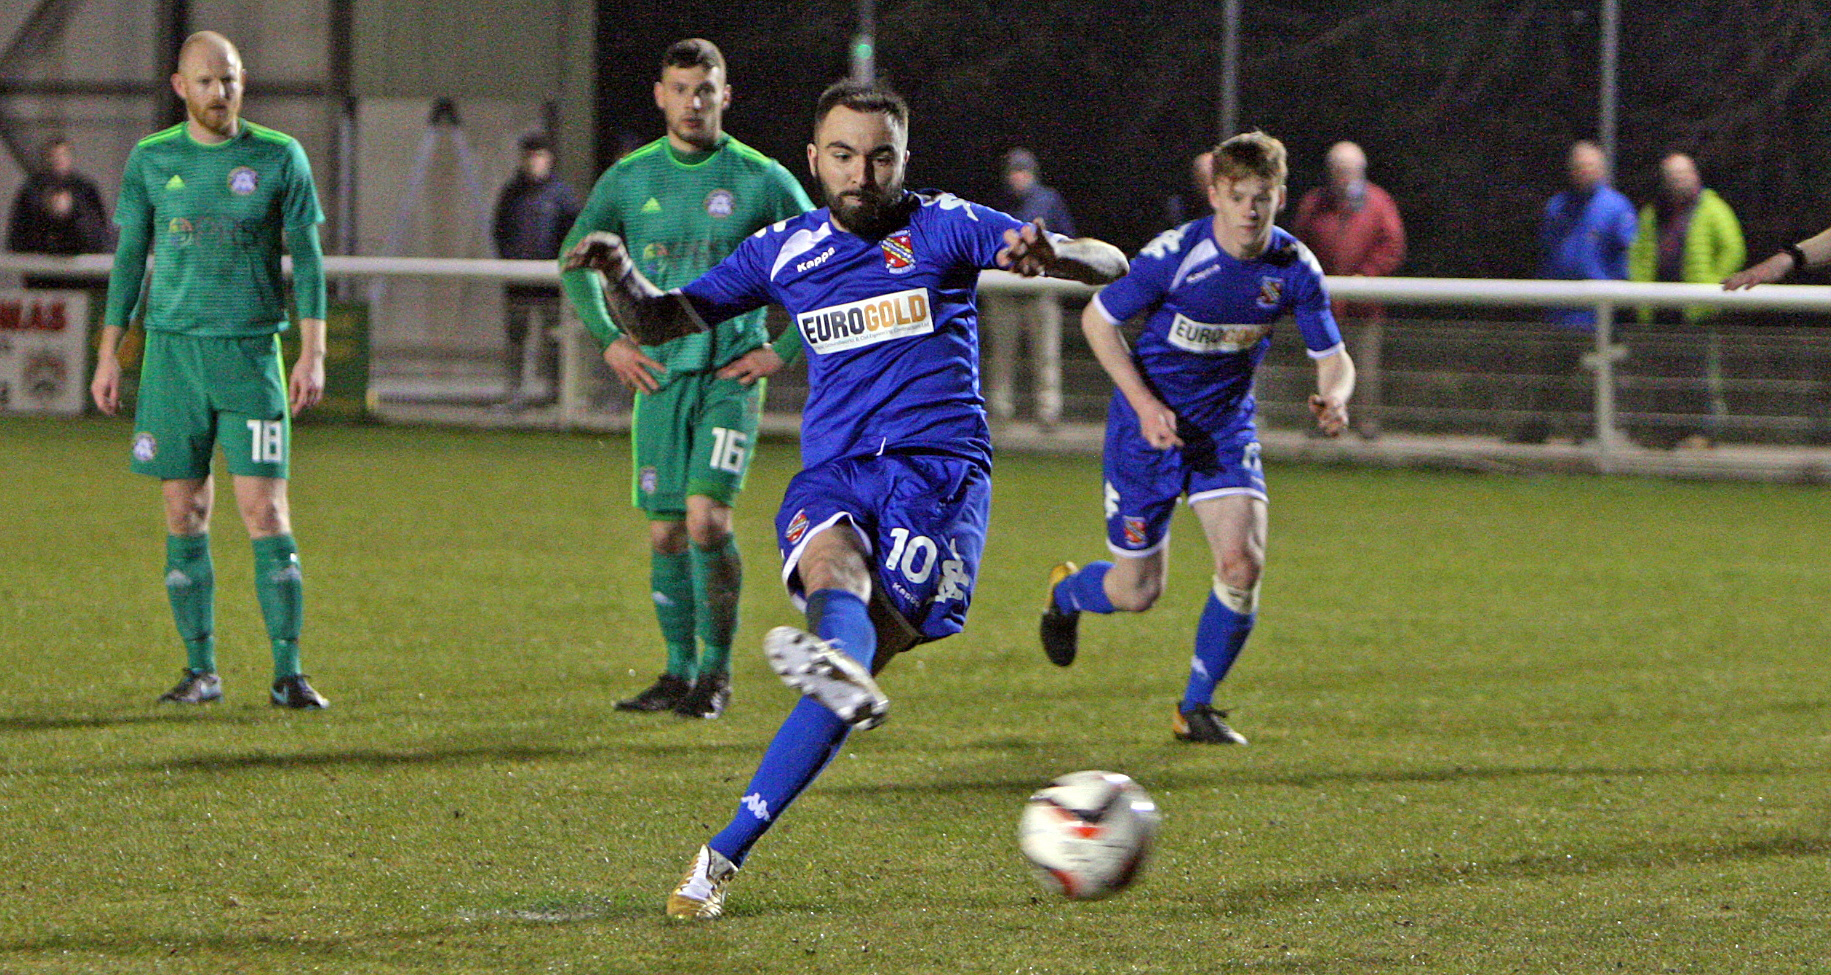 Robbie Parry opened the scoring for Bangor City at Holywell Town (Photo by Richard Birch)